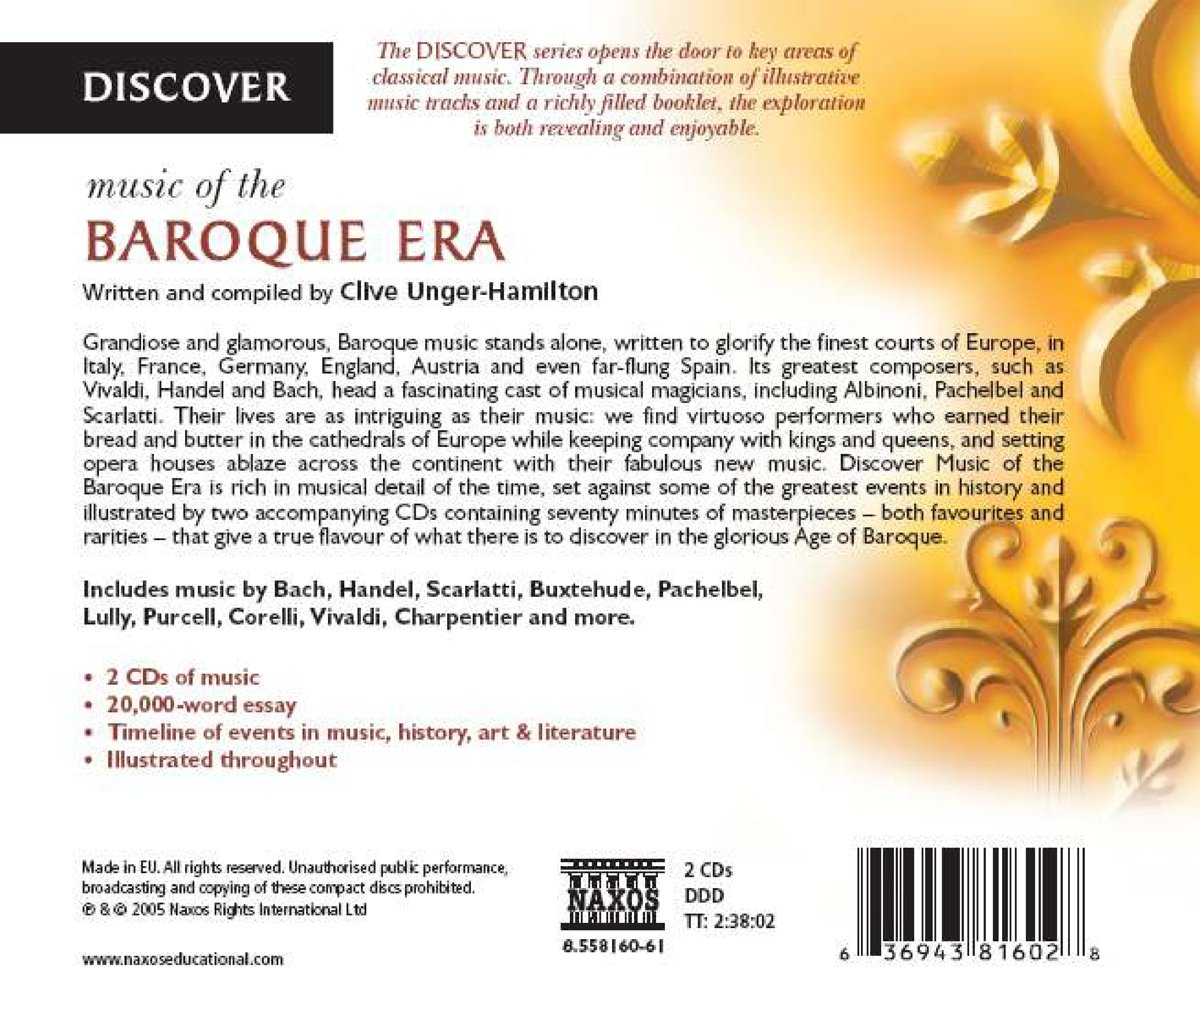 Discover Music of the Baroque Era by Naxos